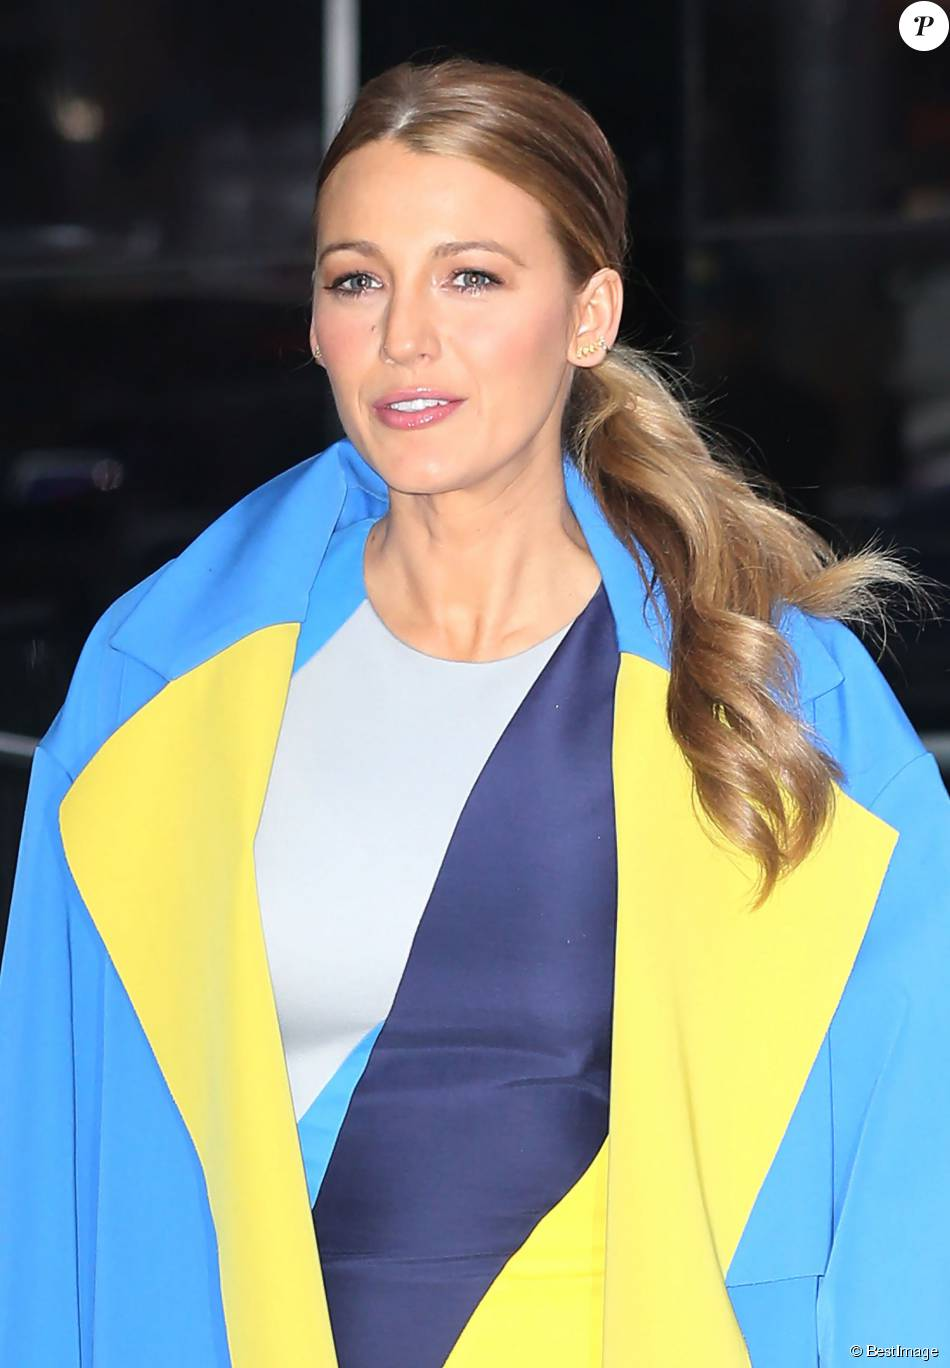 Blake lively amp america ferrara flashing panties 1